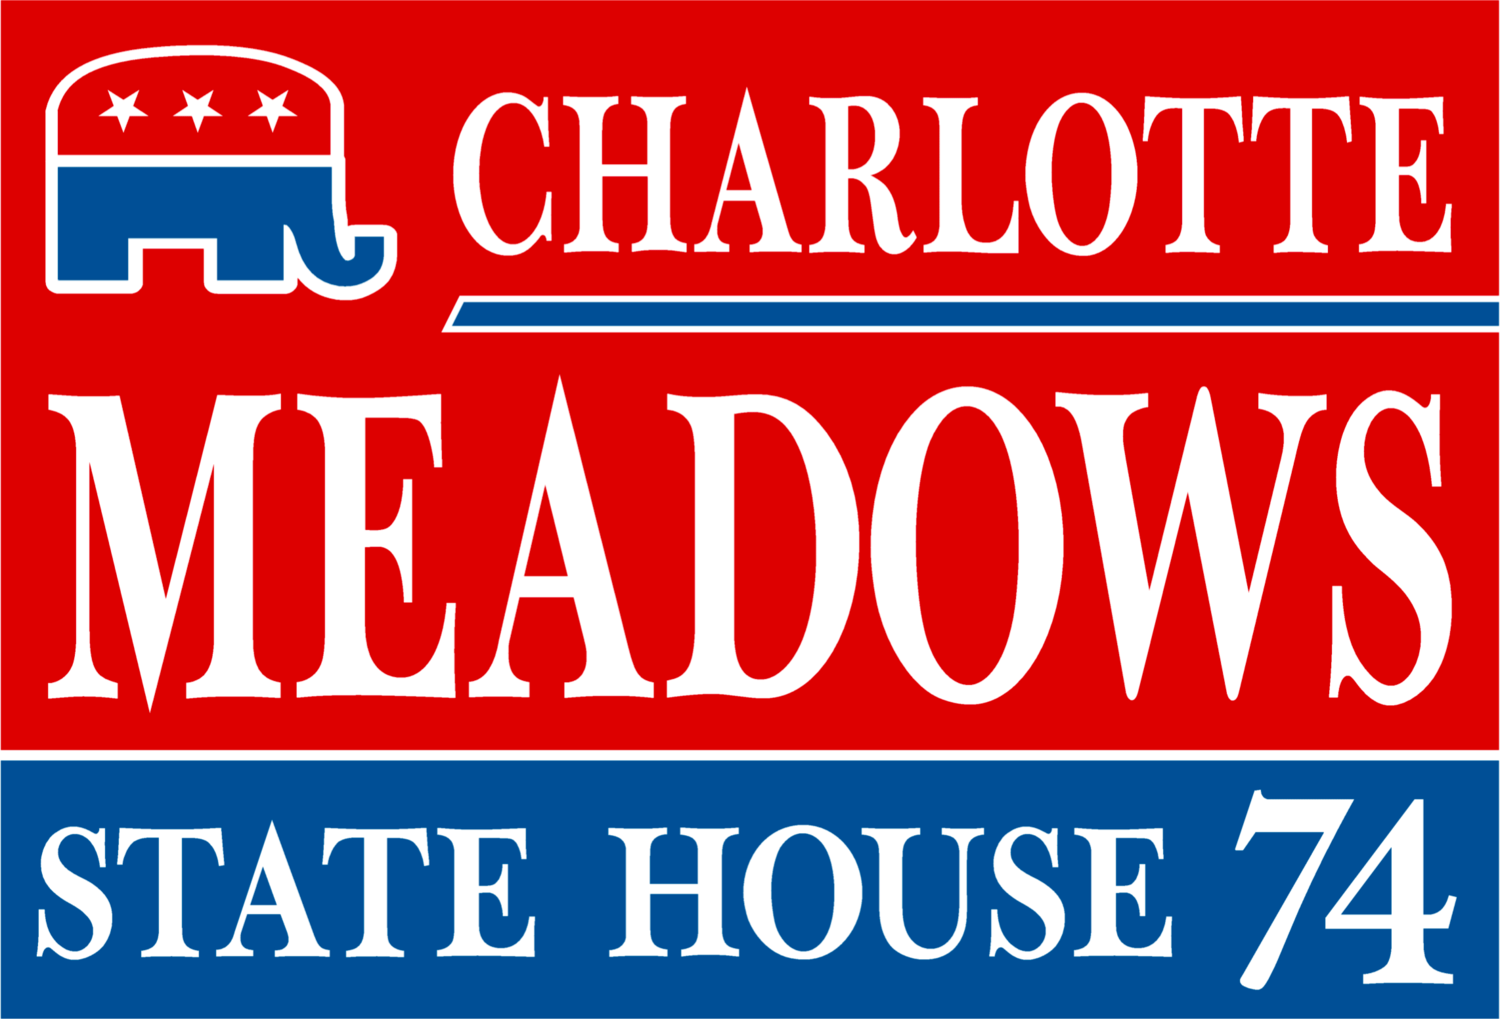 Charlotte Meadows